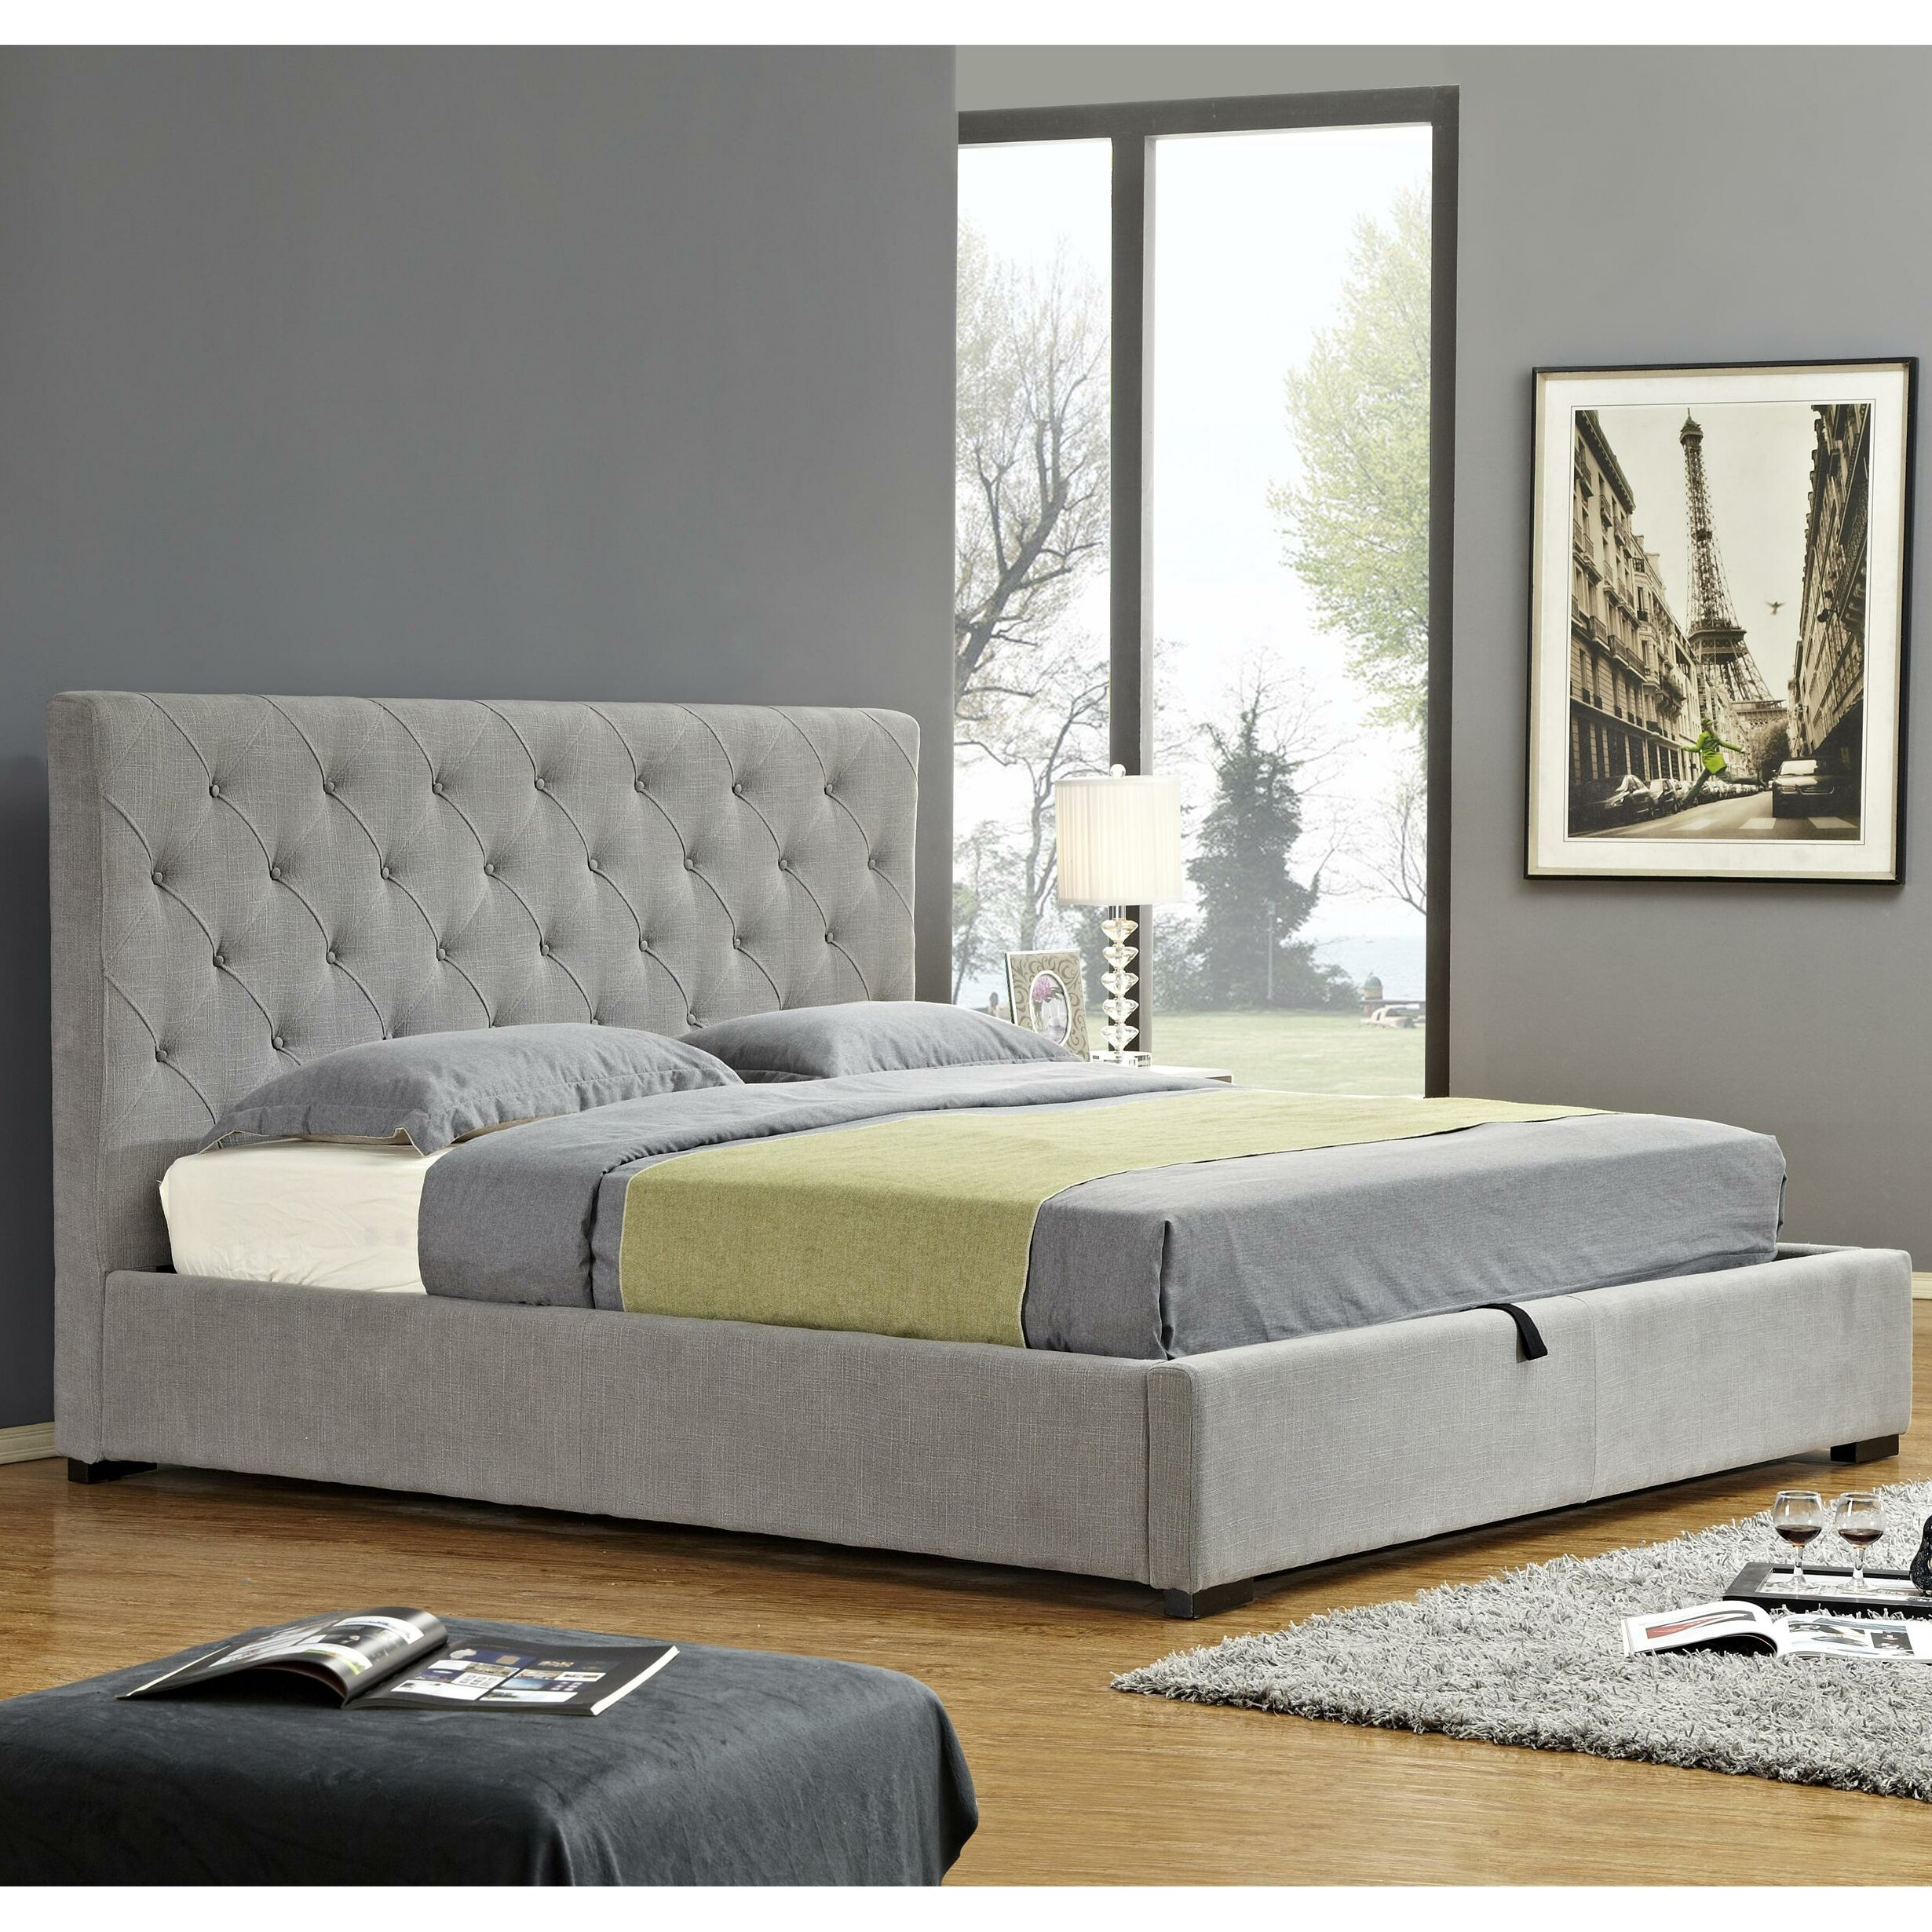 j m furniture upholstered storage platform bed reviews wayfair. Black Bedroom Furniture Sets. Home Design Ideas